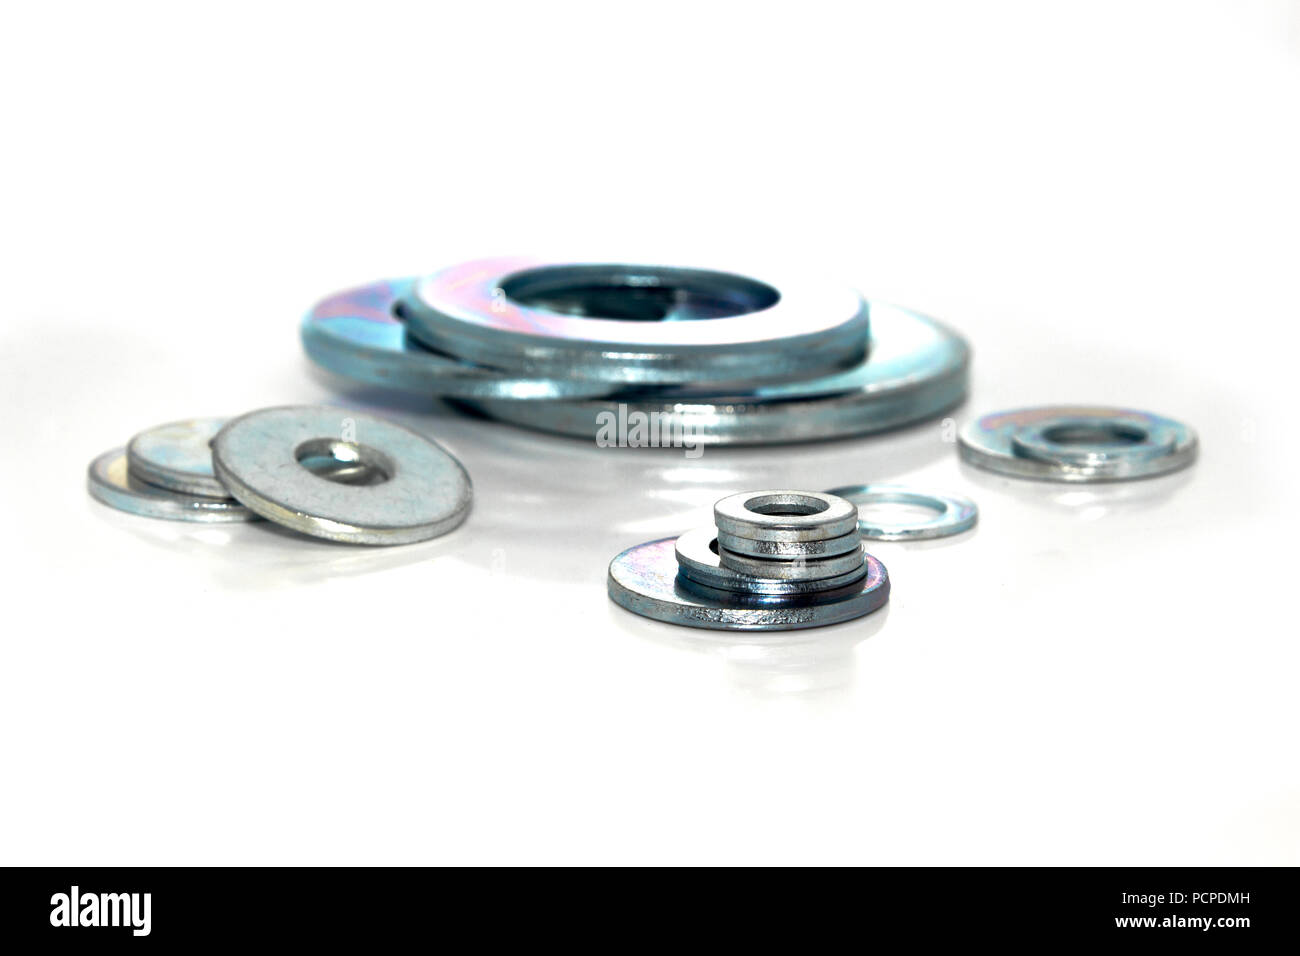 Variety of industrial galvanized steel washers on white background - Stock Image